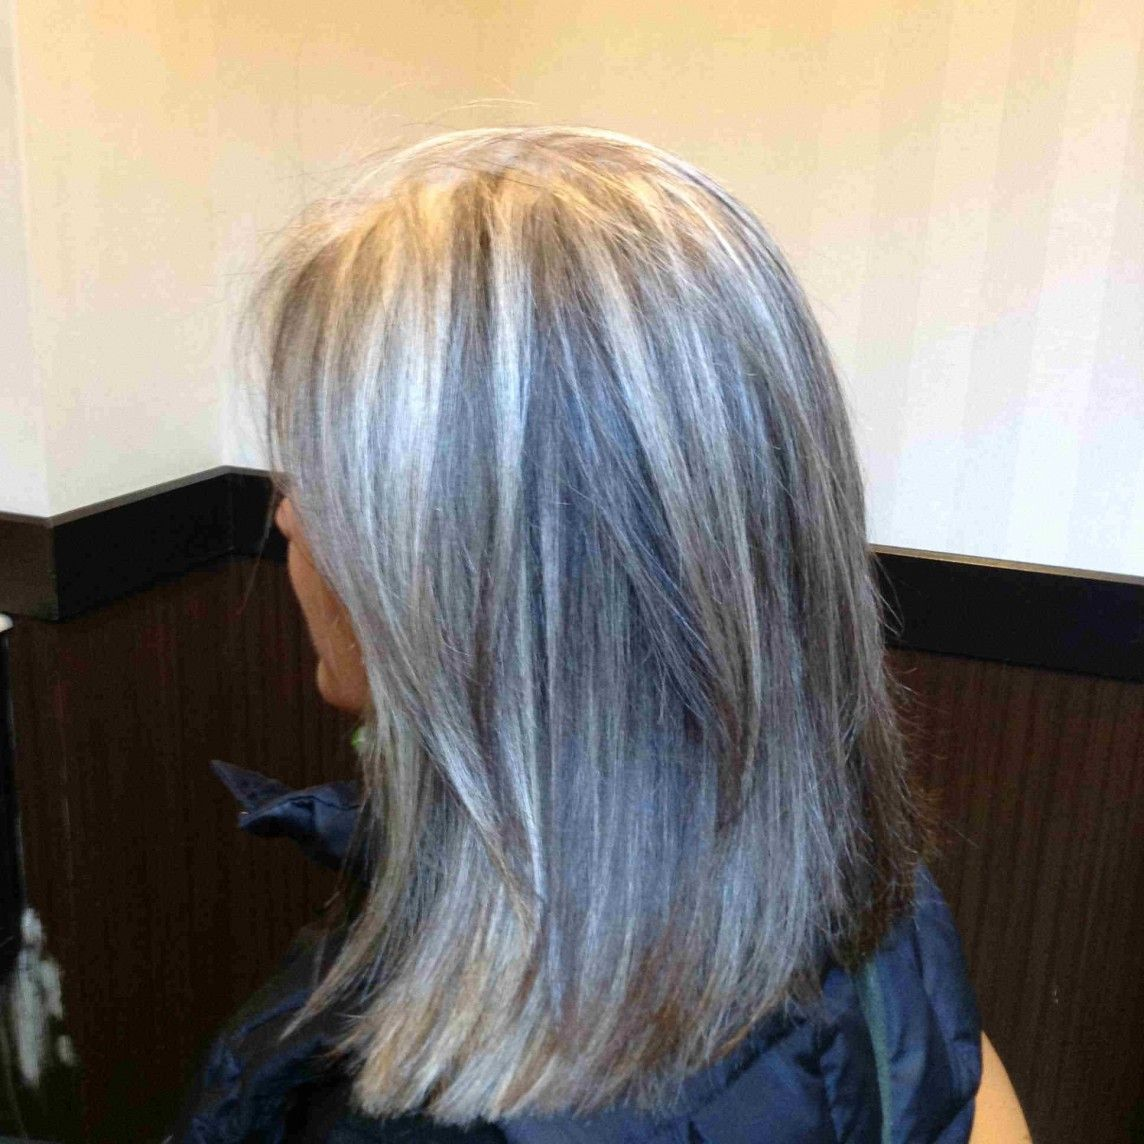 Adding Cool Tones To Make Transition Easier Hair Styles Gray Hair Highlights Transition To Gray Hair